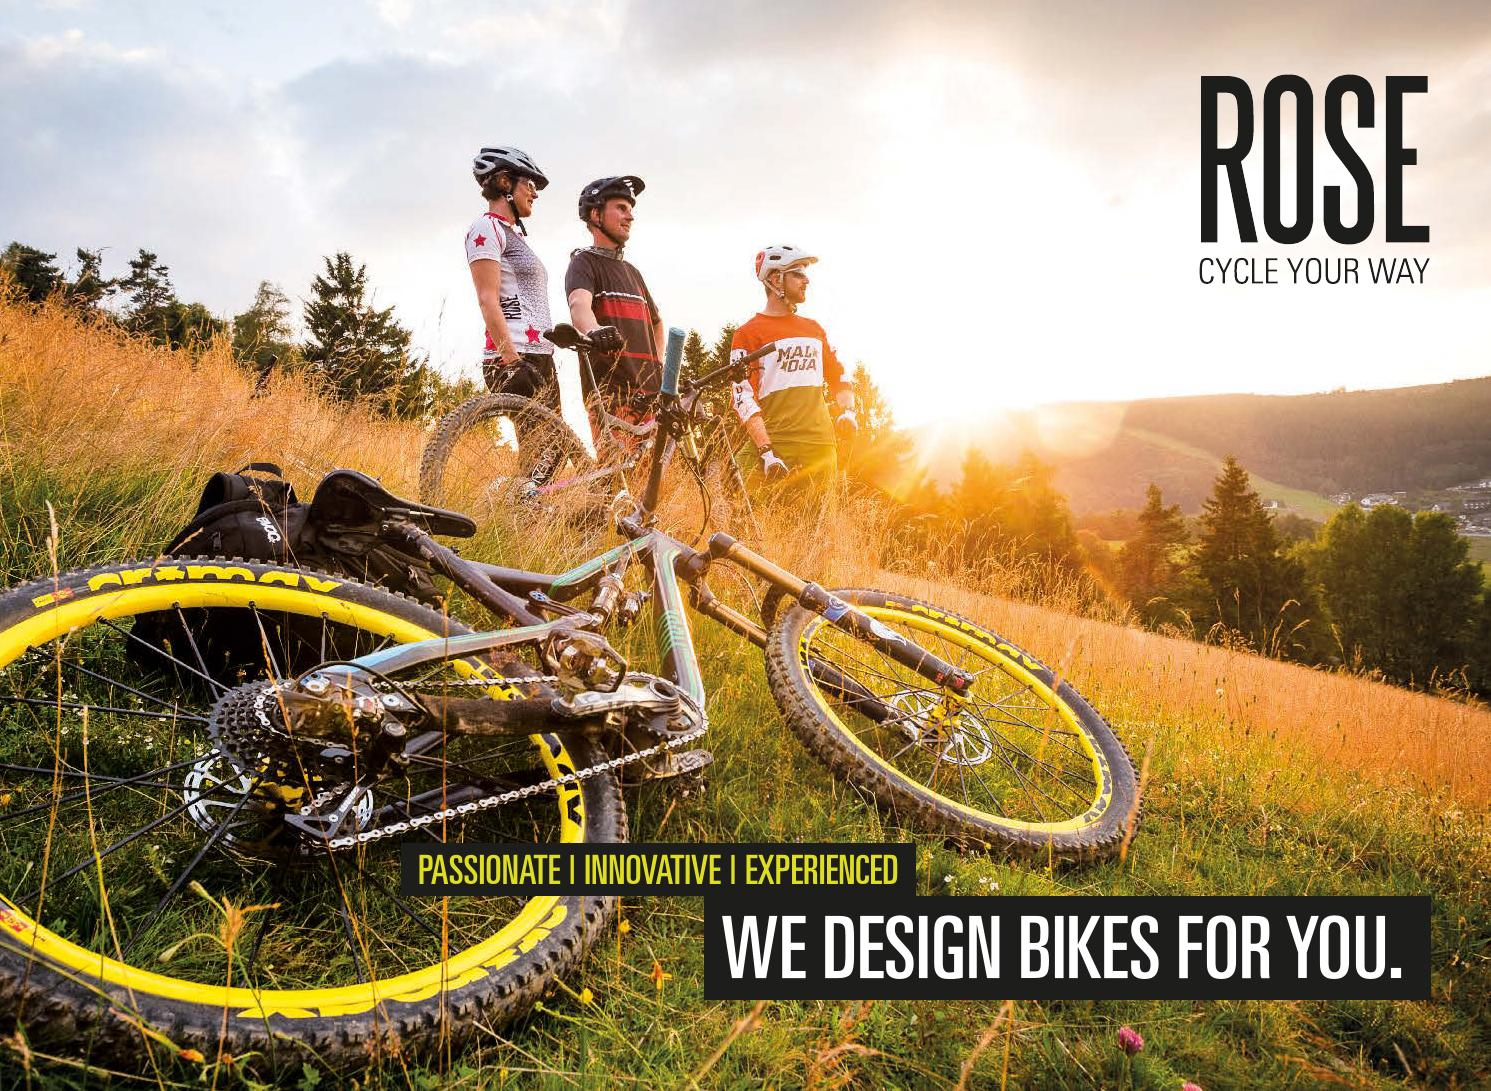 Catalogo Rose Bikes 2015 By Bikemtb Net Issuu